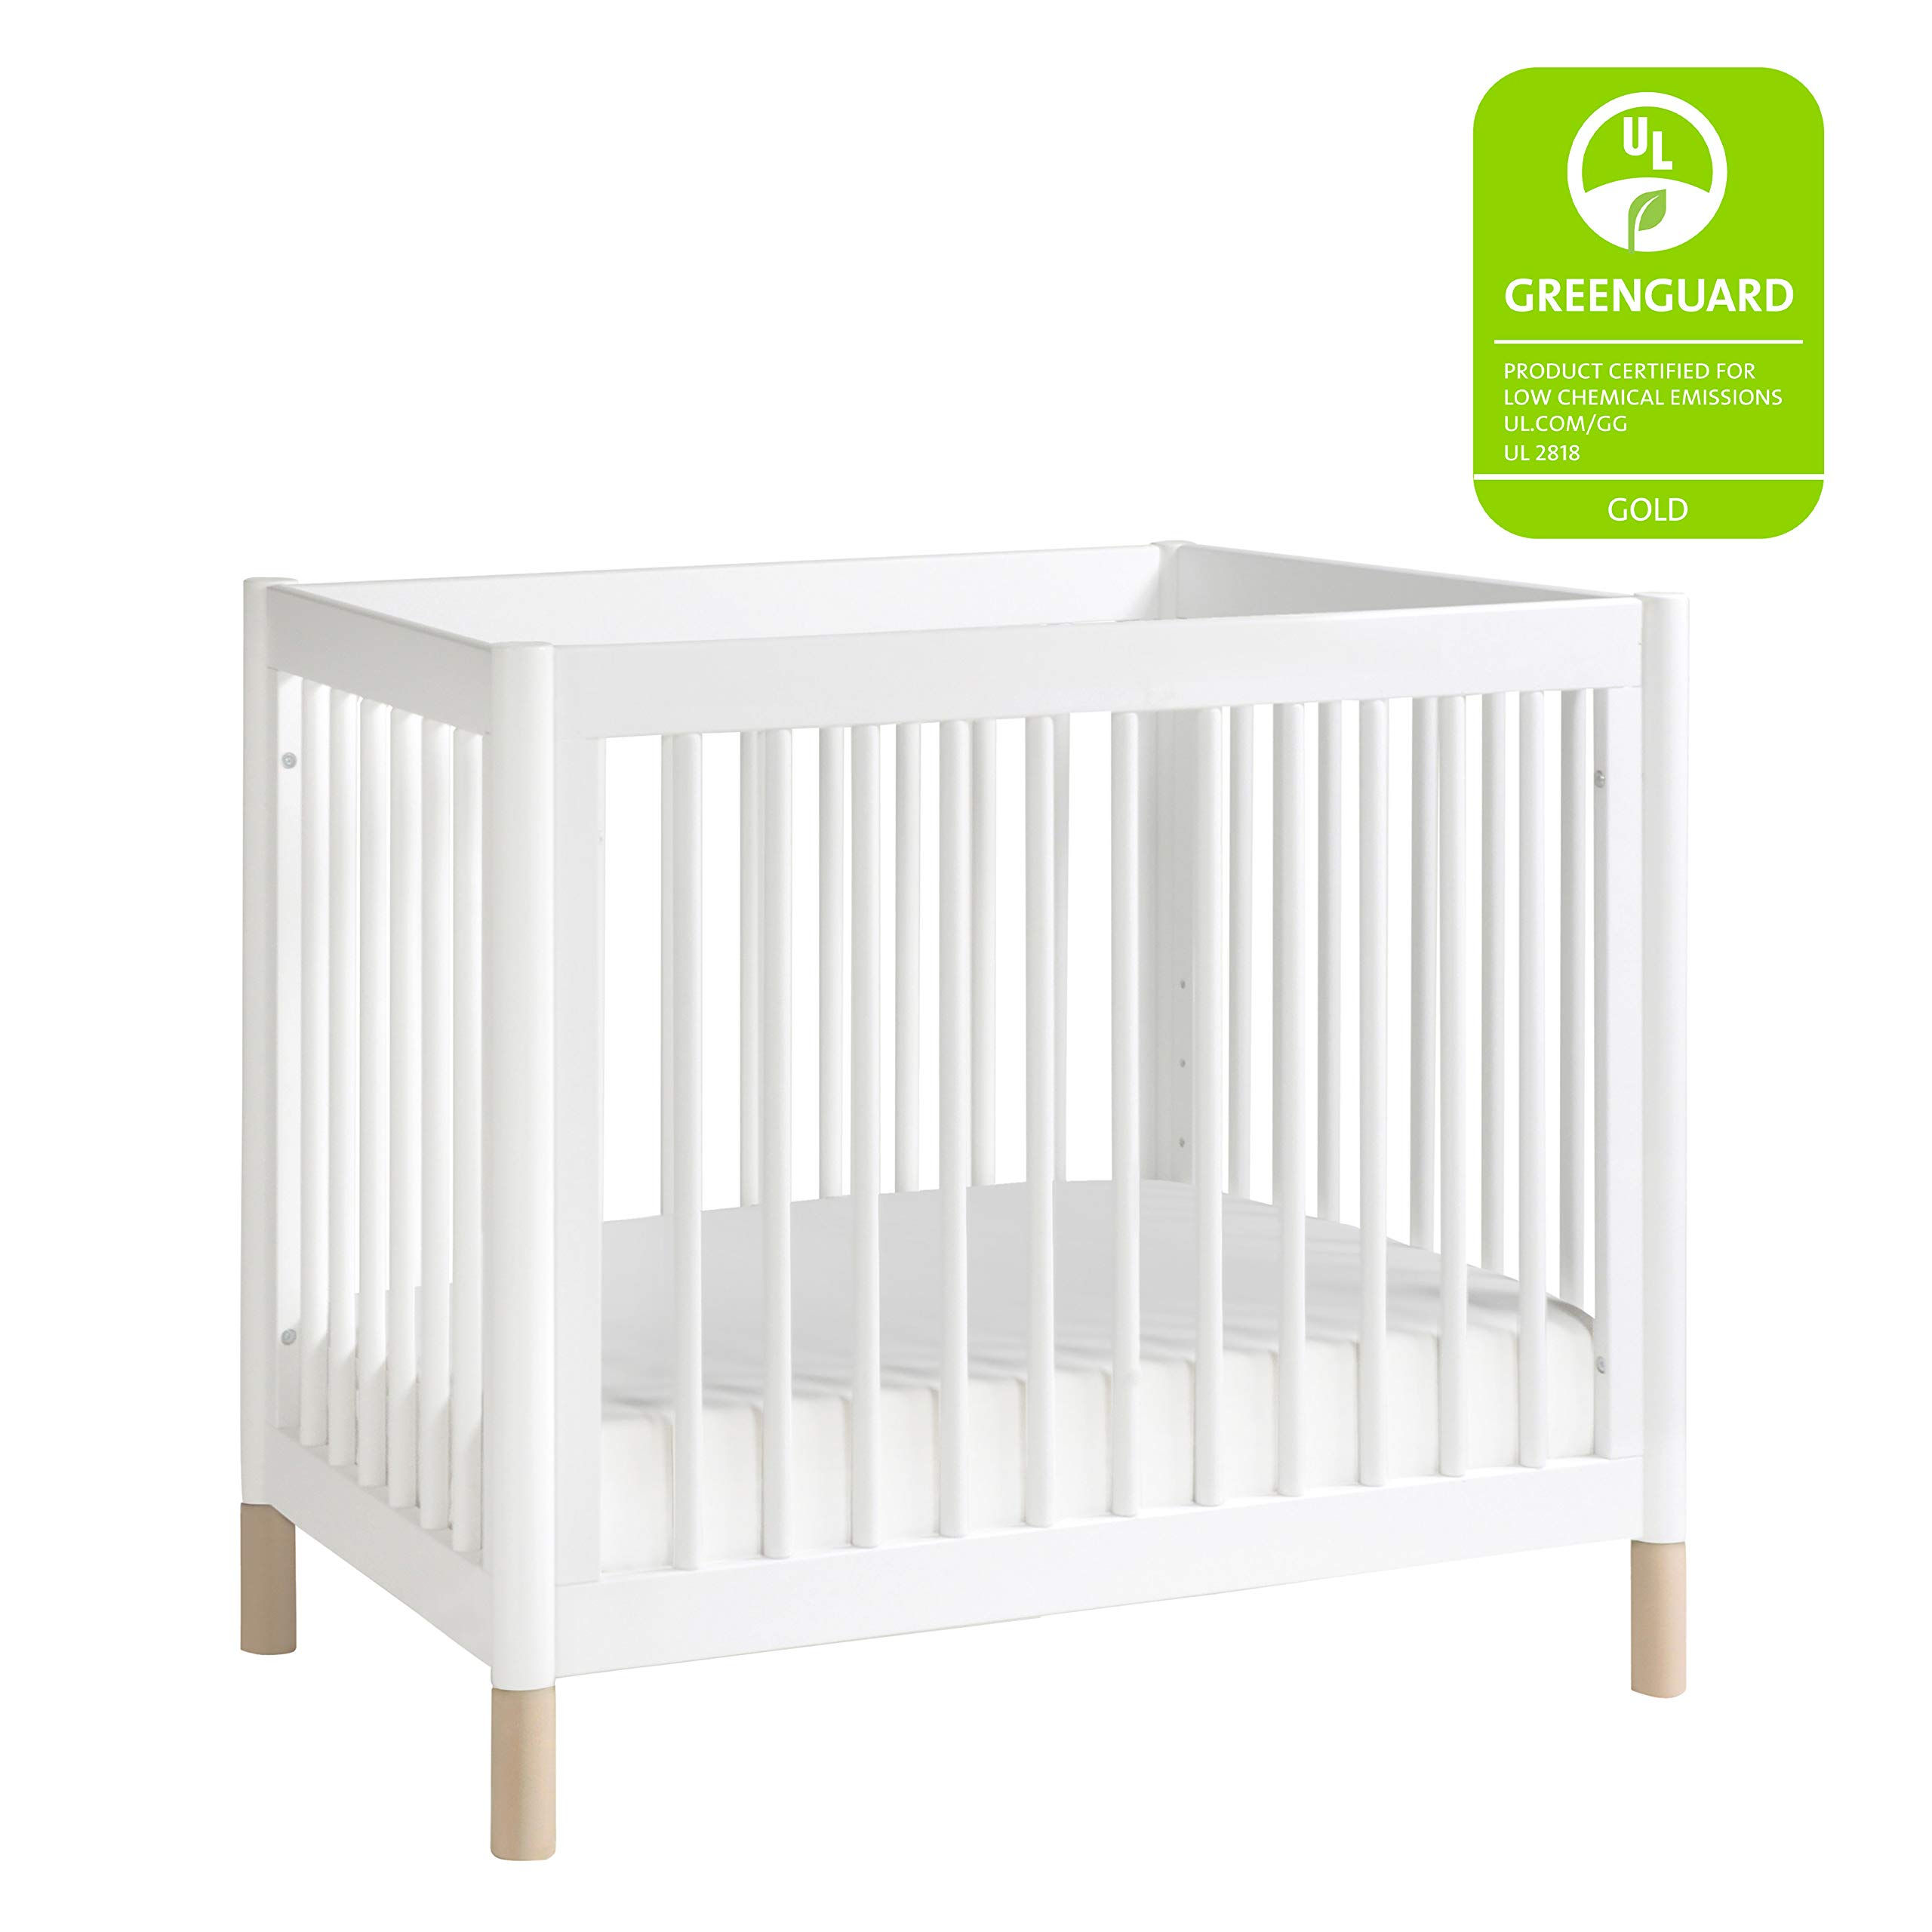 Babyletto Gelato 2-in-1 Mini Crib, White / Washed Natural by Babyletto